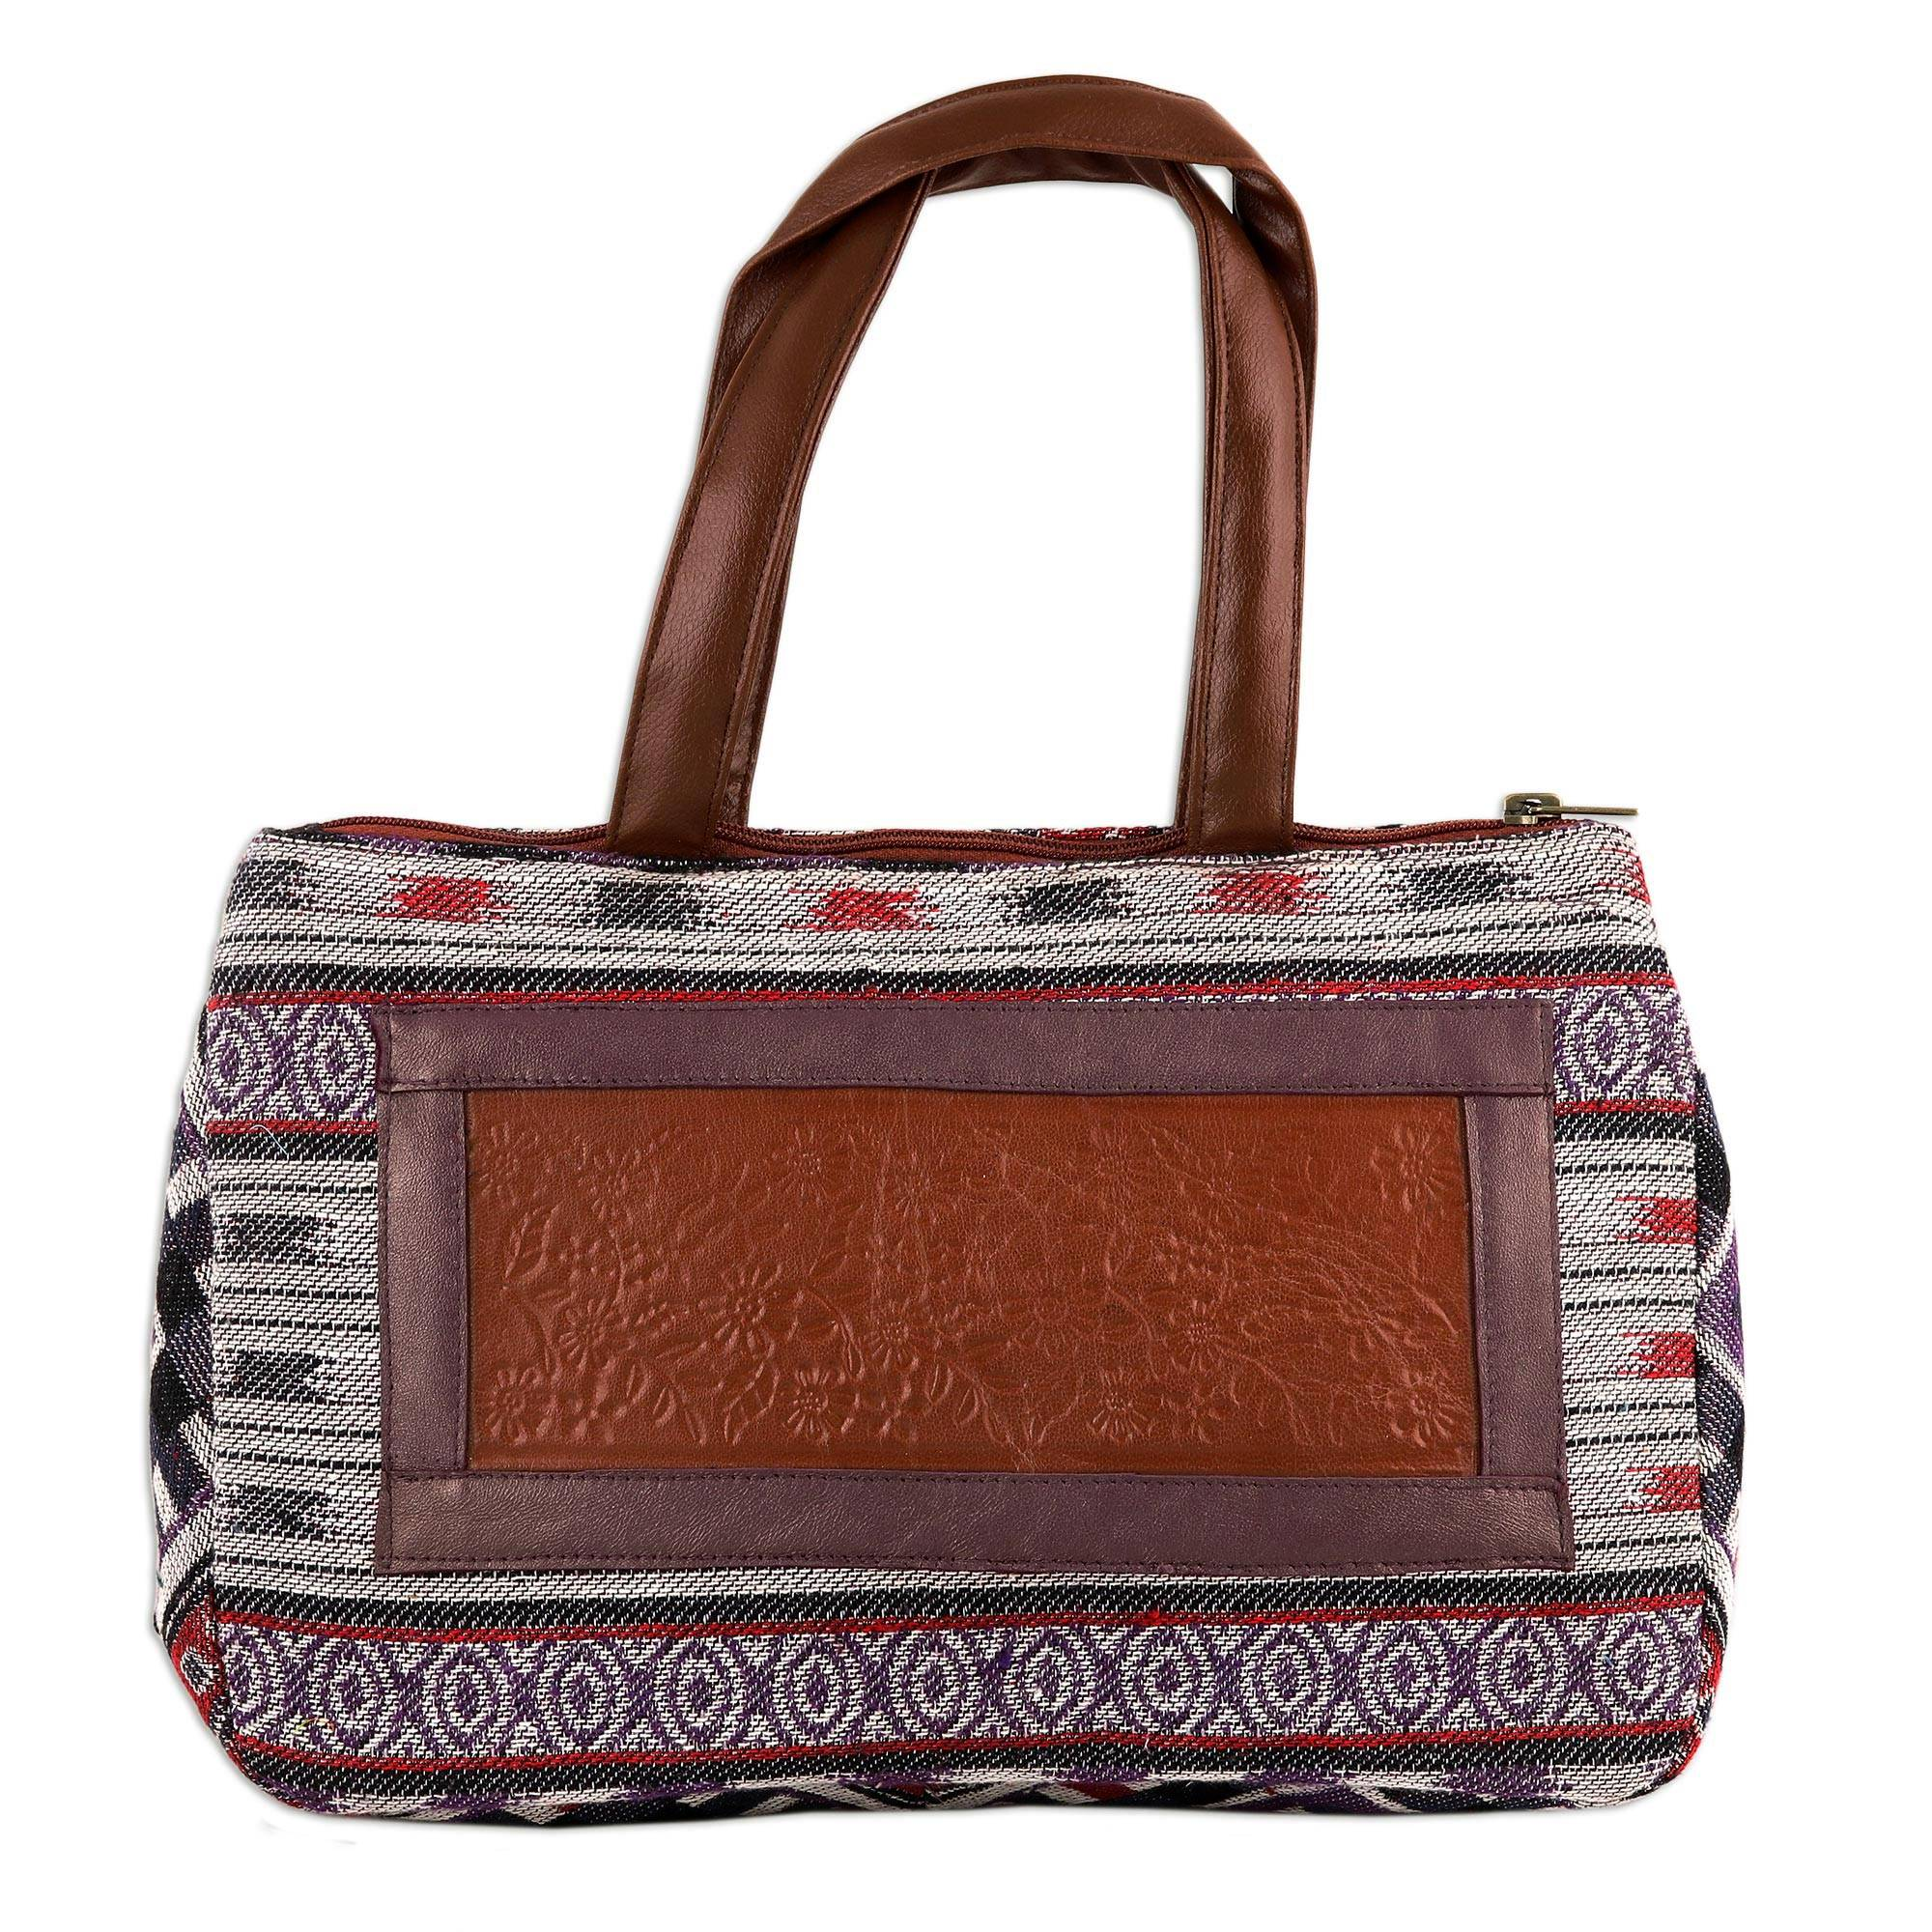 Novica Cotton with leather accents handbag, Pattern Party